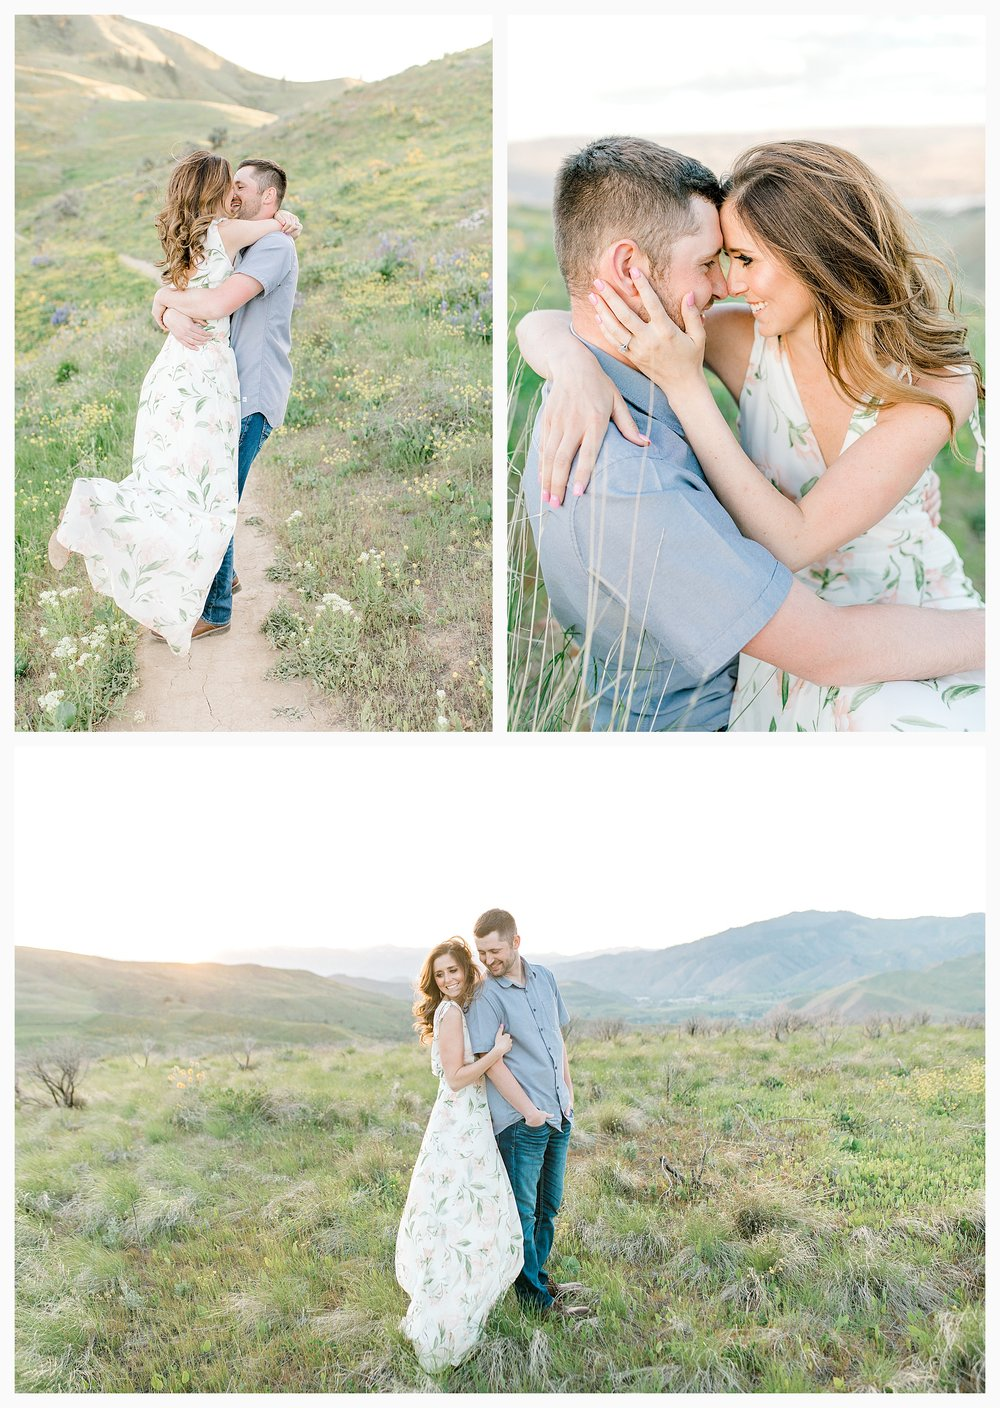 Engagement session amongst the wildflowers in Wenatchee, Washington | Engagement Session Outfit Inspiration for Wedding Photography with Emma Rose Company | Light and Airy PNW Photographer, Seattle Bride_0017.jpg